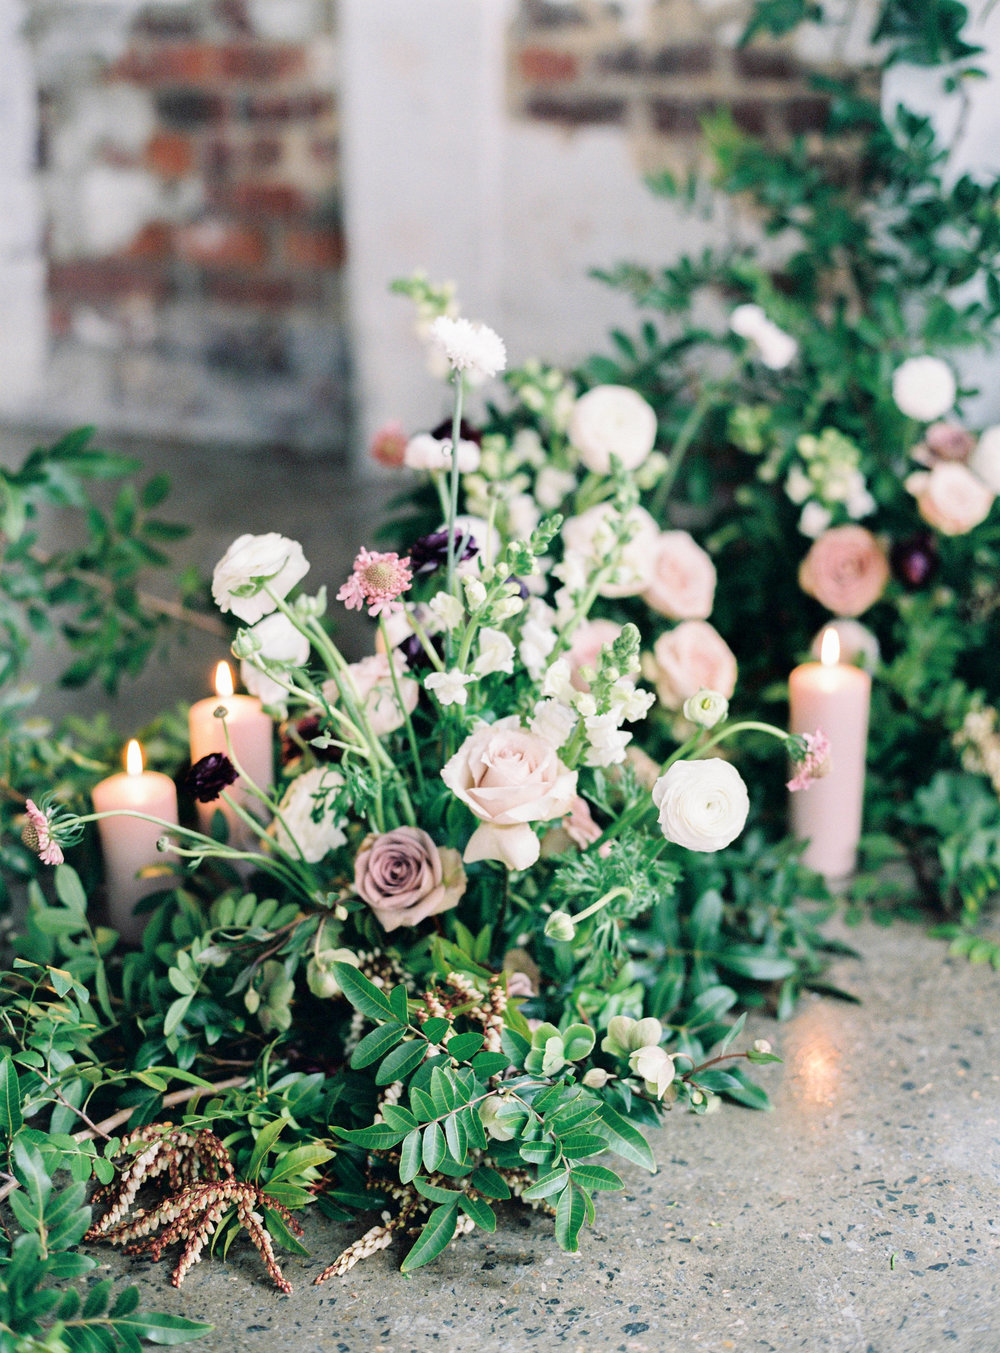 Aravella Event Design | Floral Installation | Photo by Ben Yew Photography